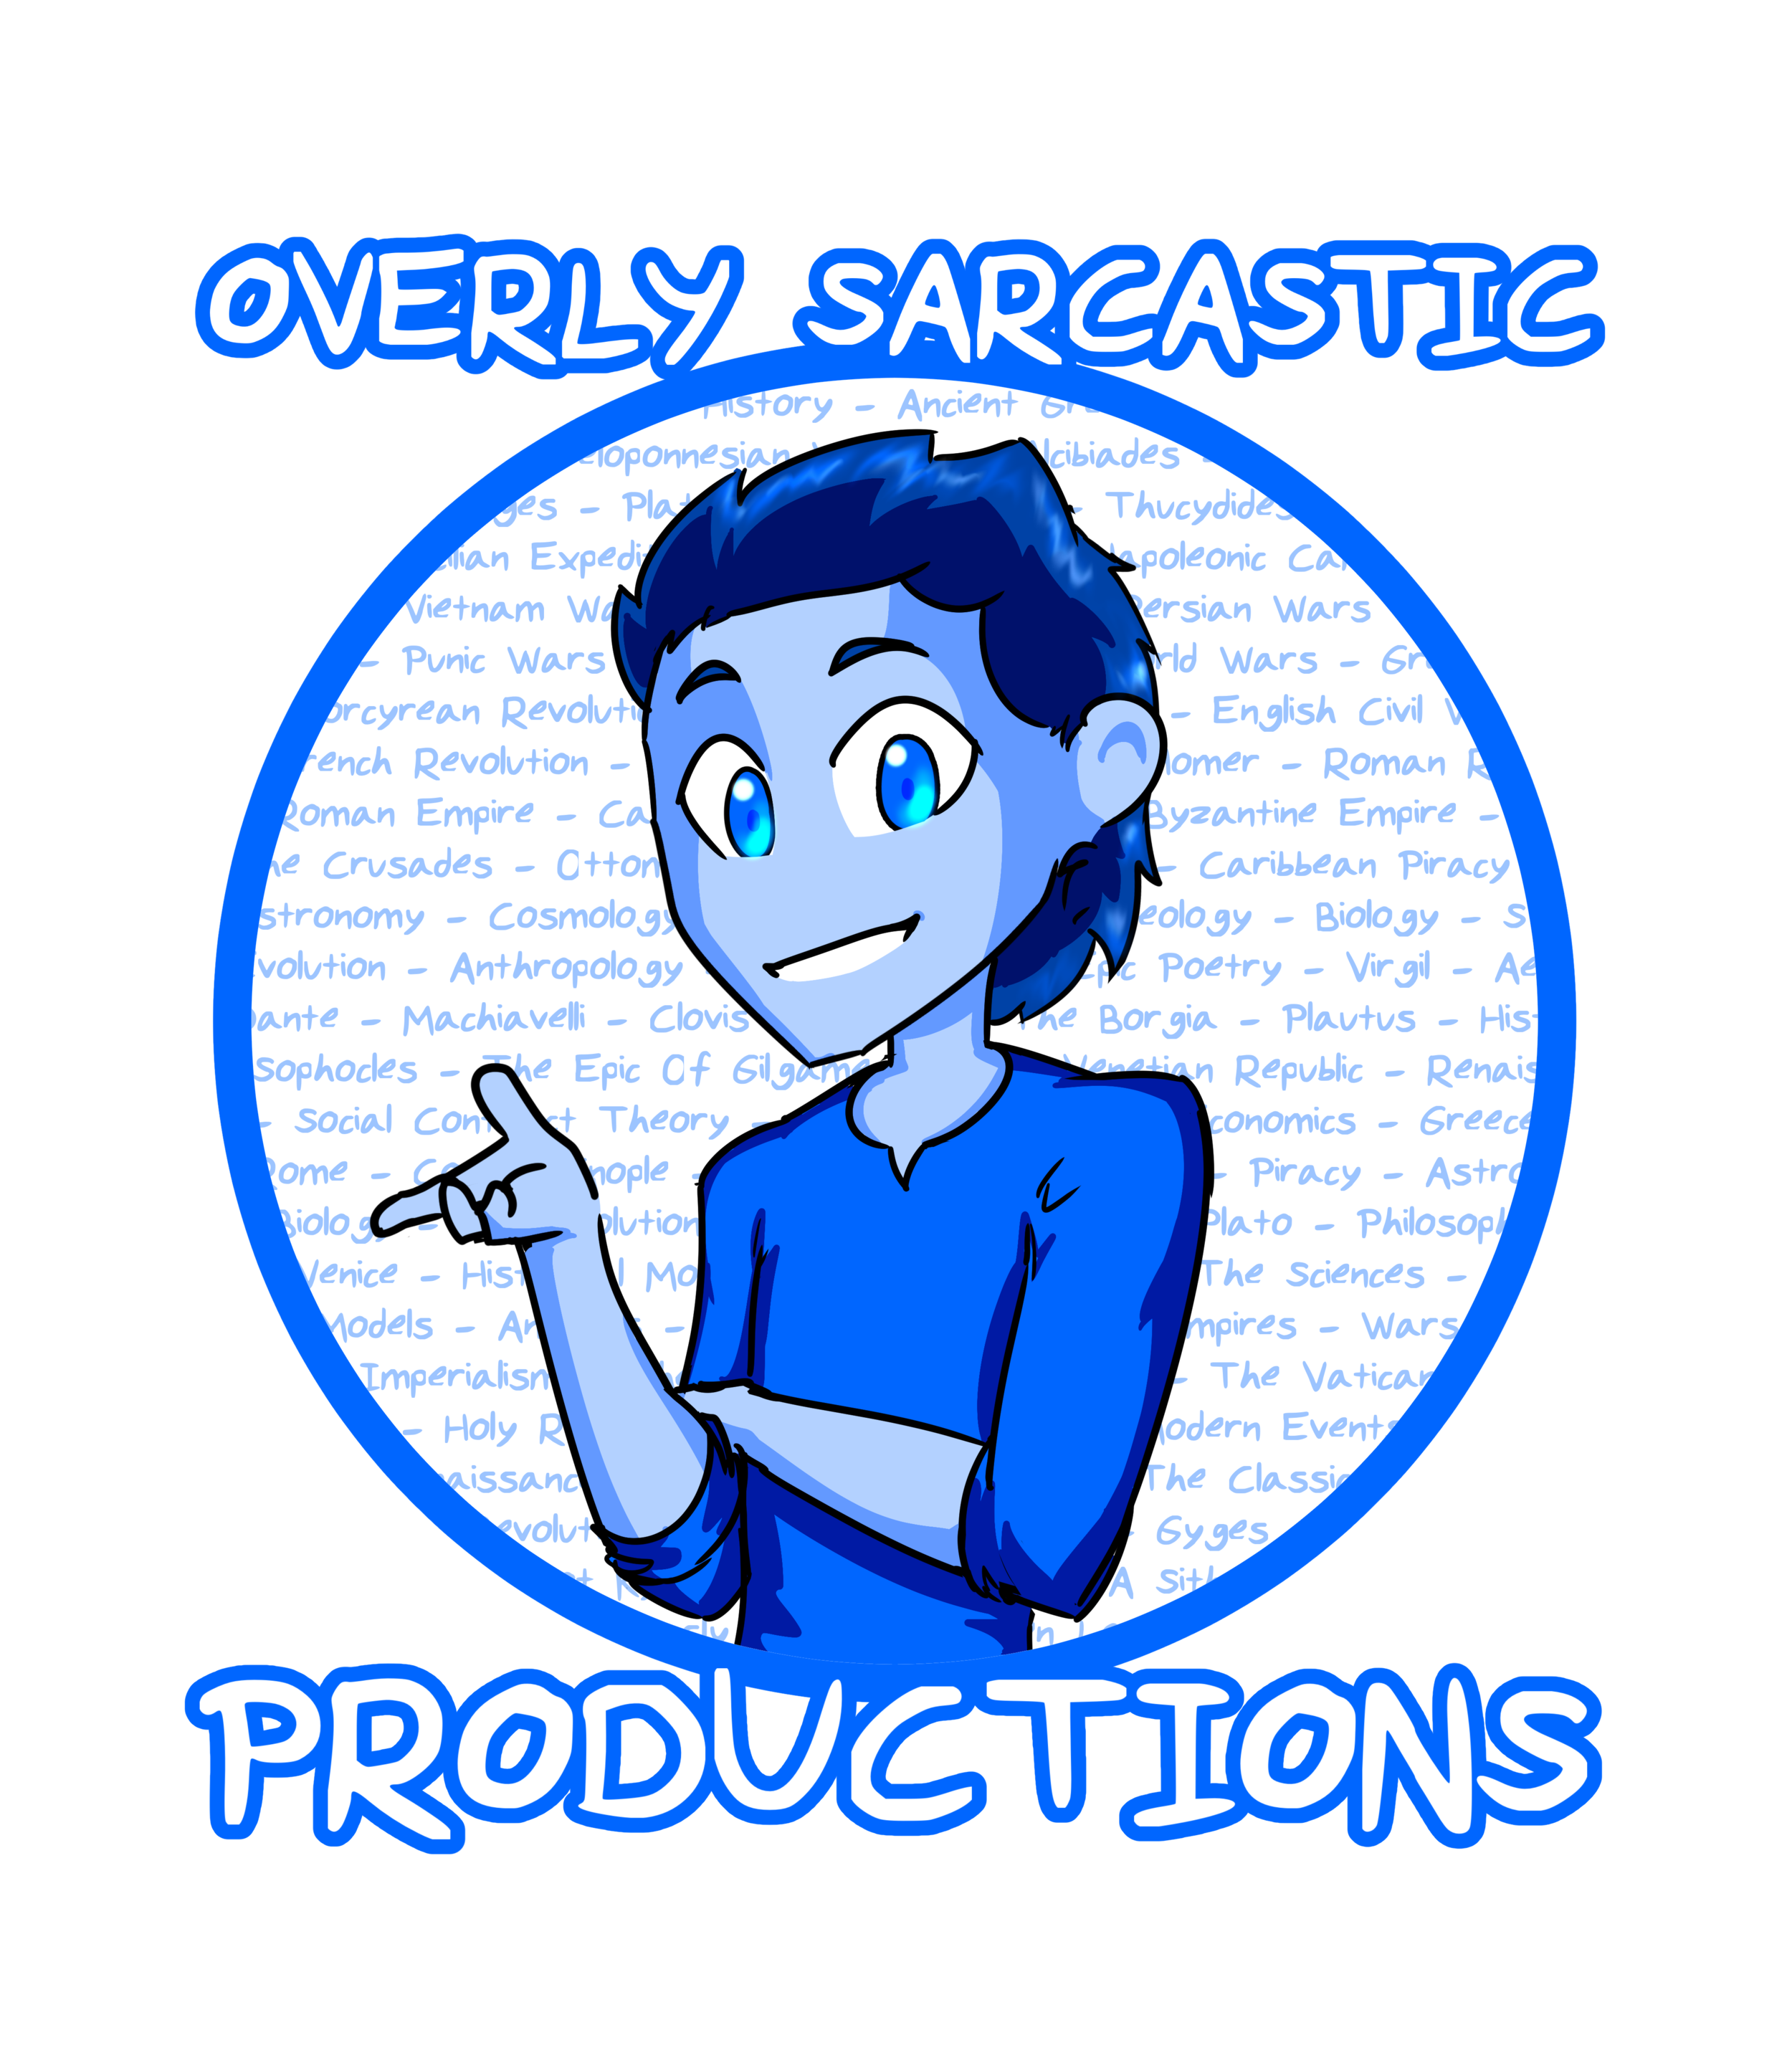 ABOUT BLUE - Blue is a baritone-voiced writer and amateur cartographer. He enjoys playing videogames, long walks through the park, anything vaguely Mediterranean, and complaining about television shows